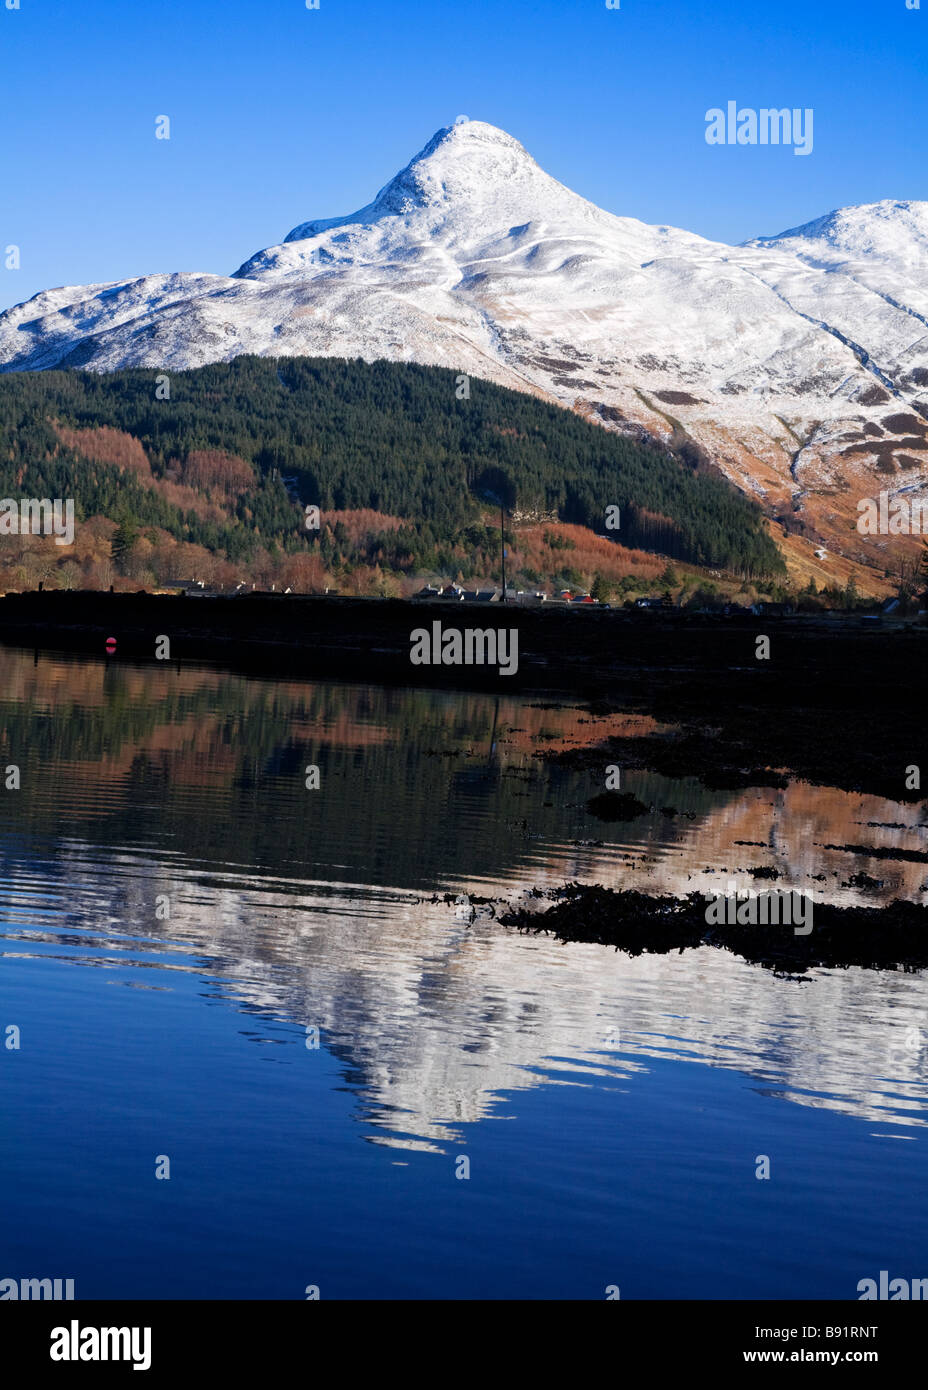 A snow capped pap of Glencoe and loch Leven, Lochaber, Scotland. - Stock Image